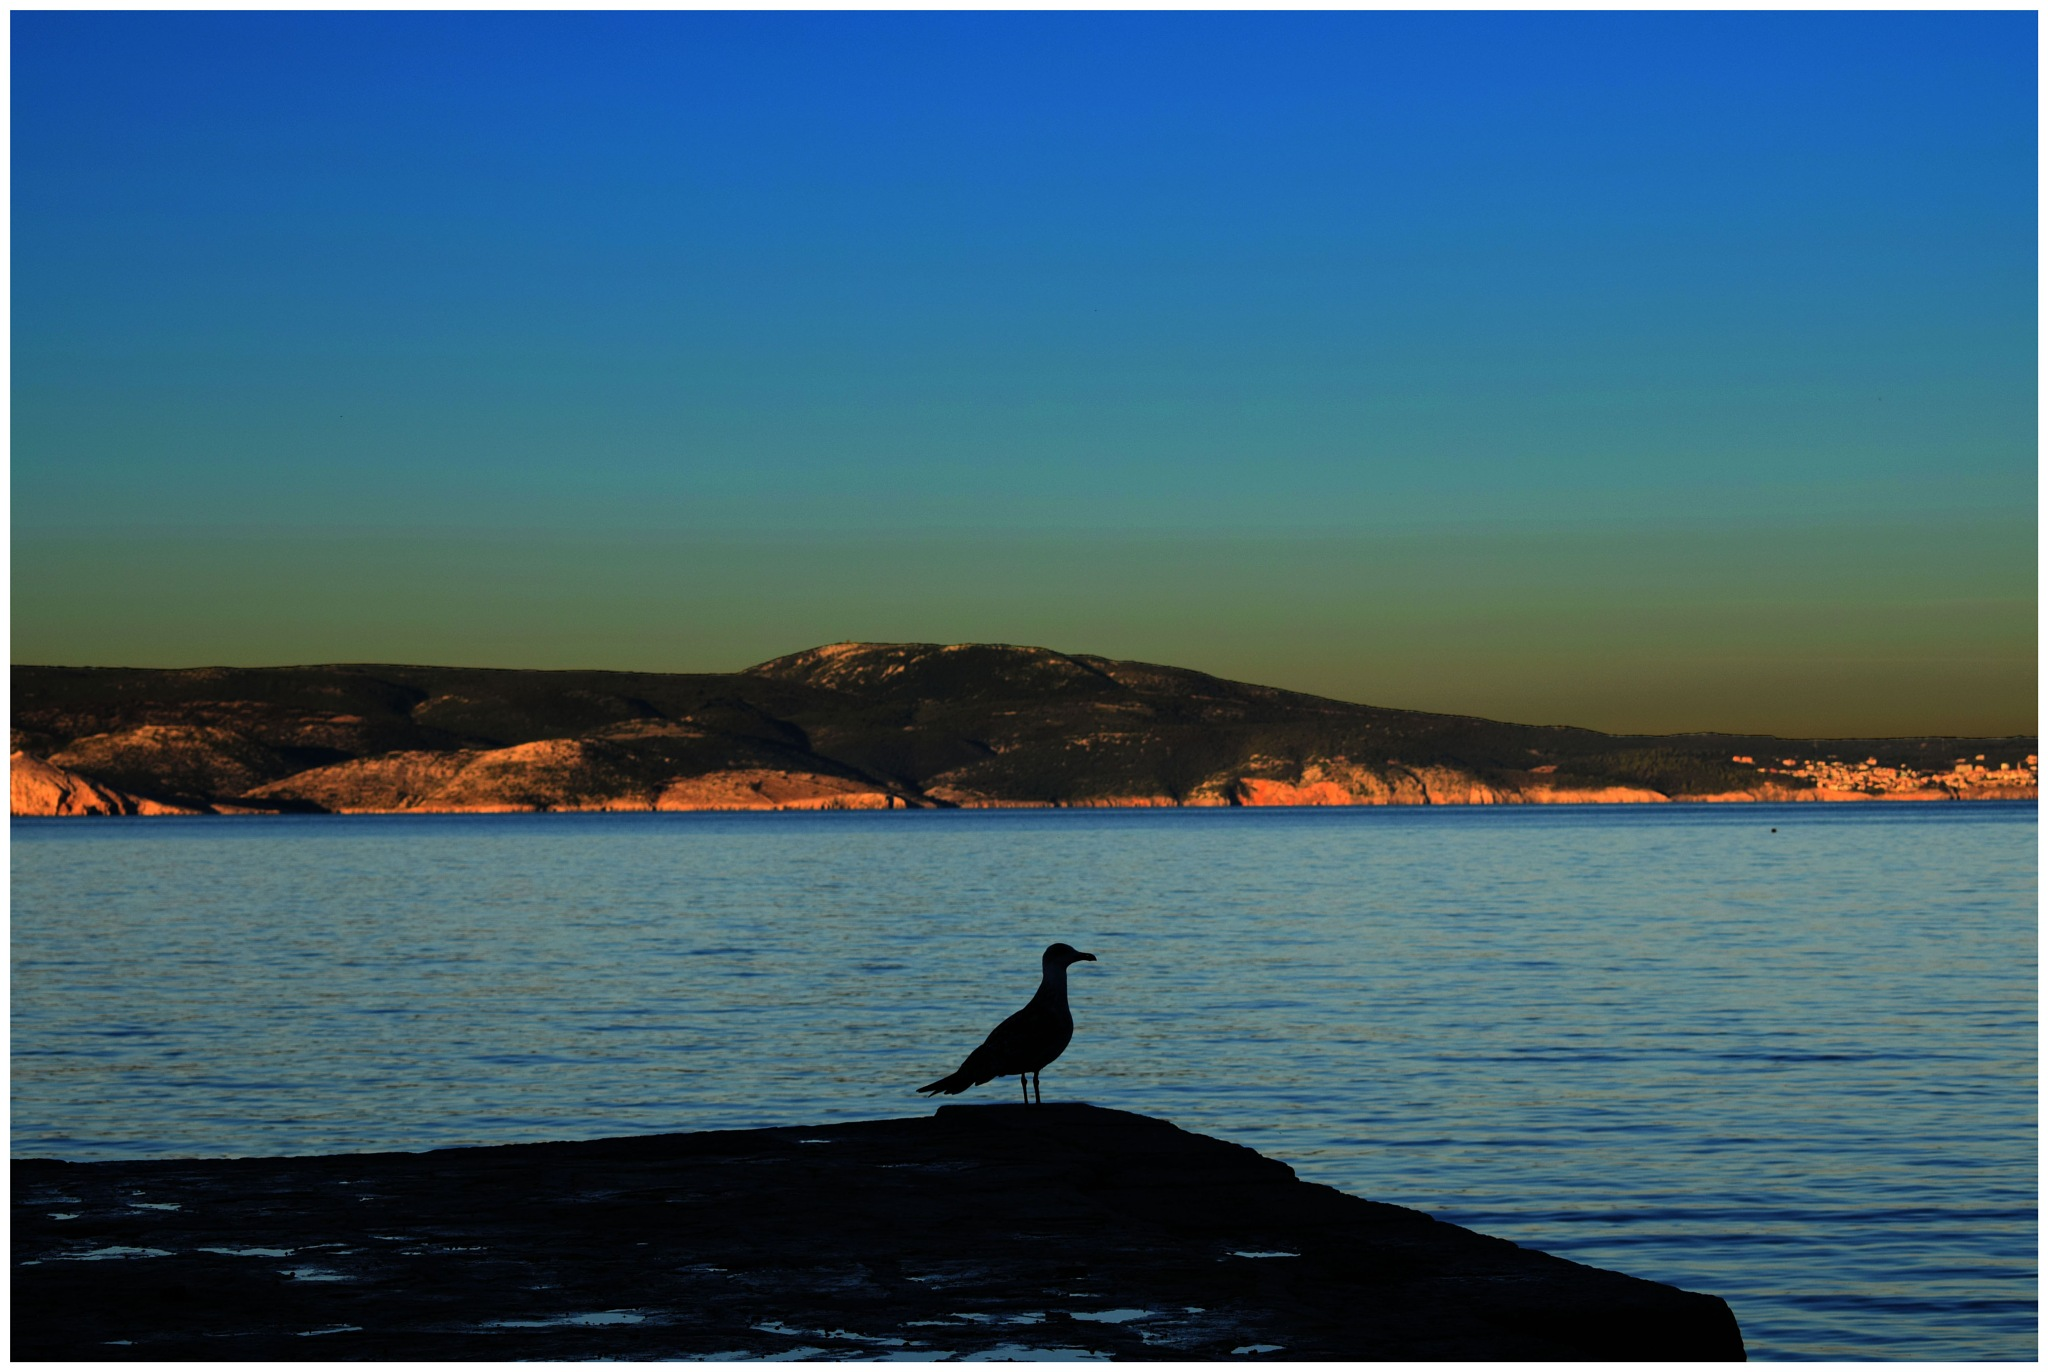 Seagull by Rockaway Photography